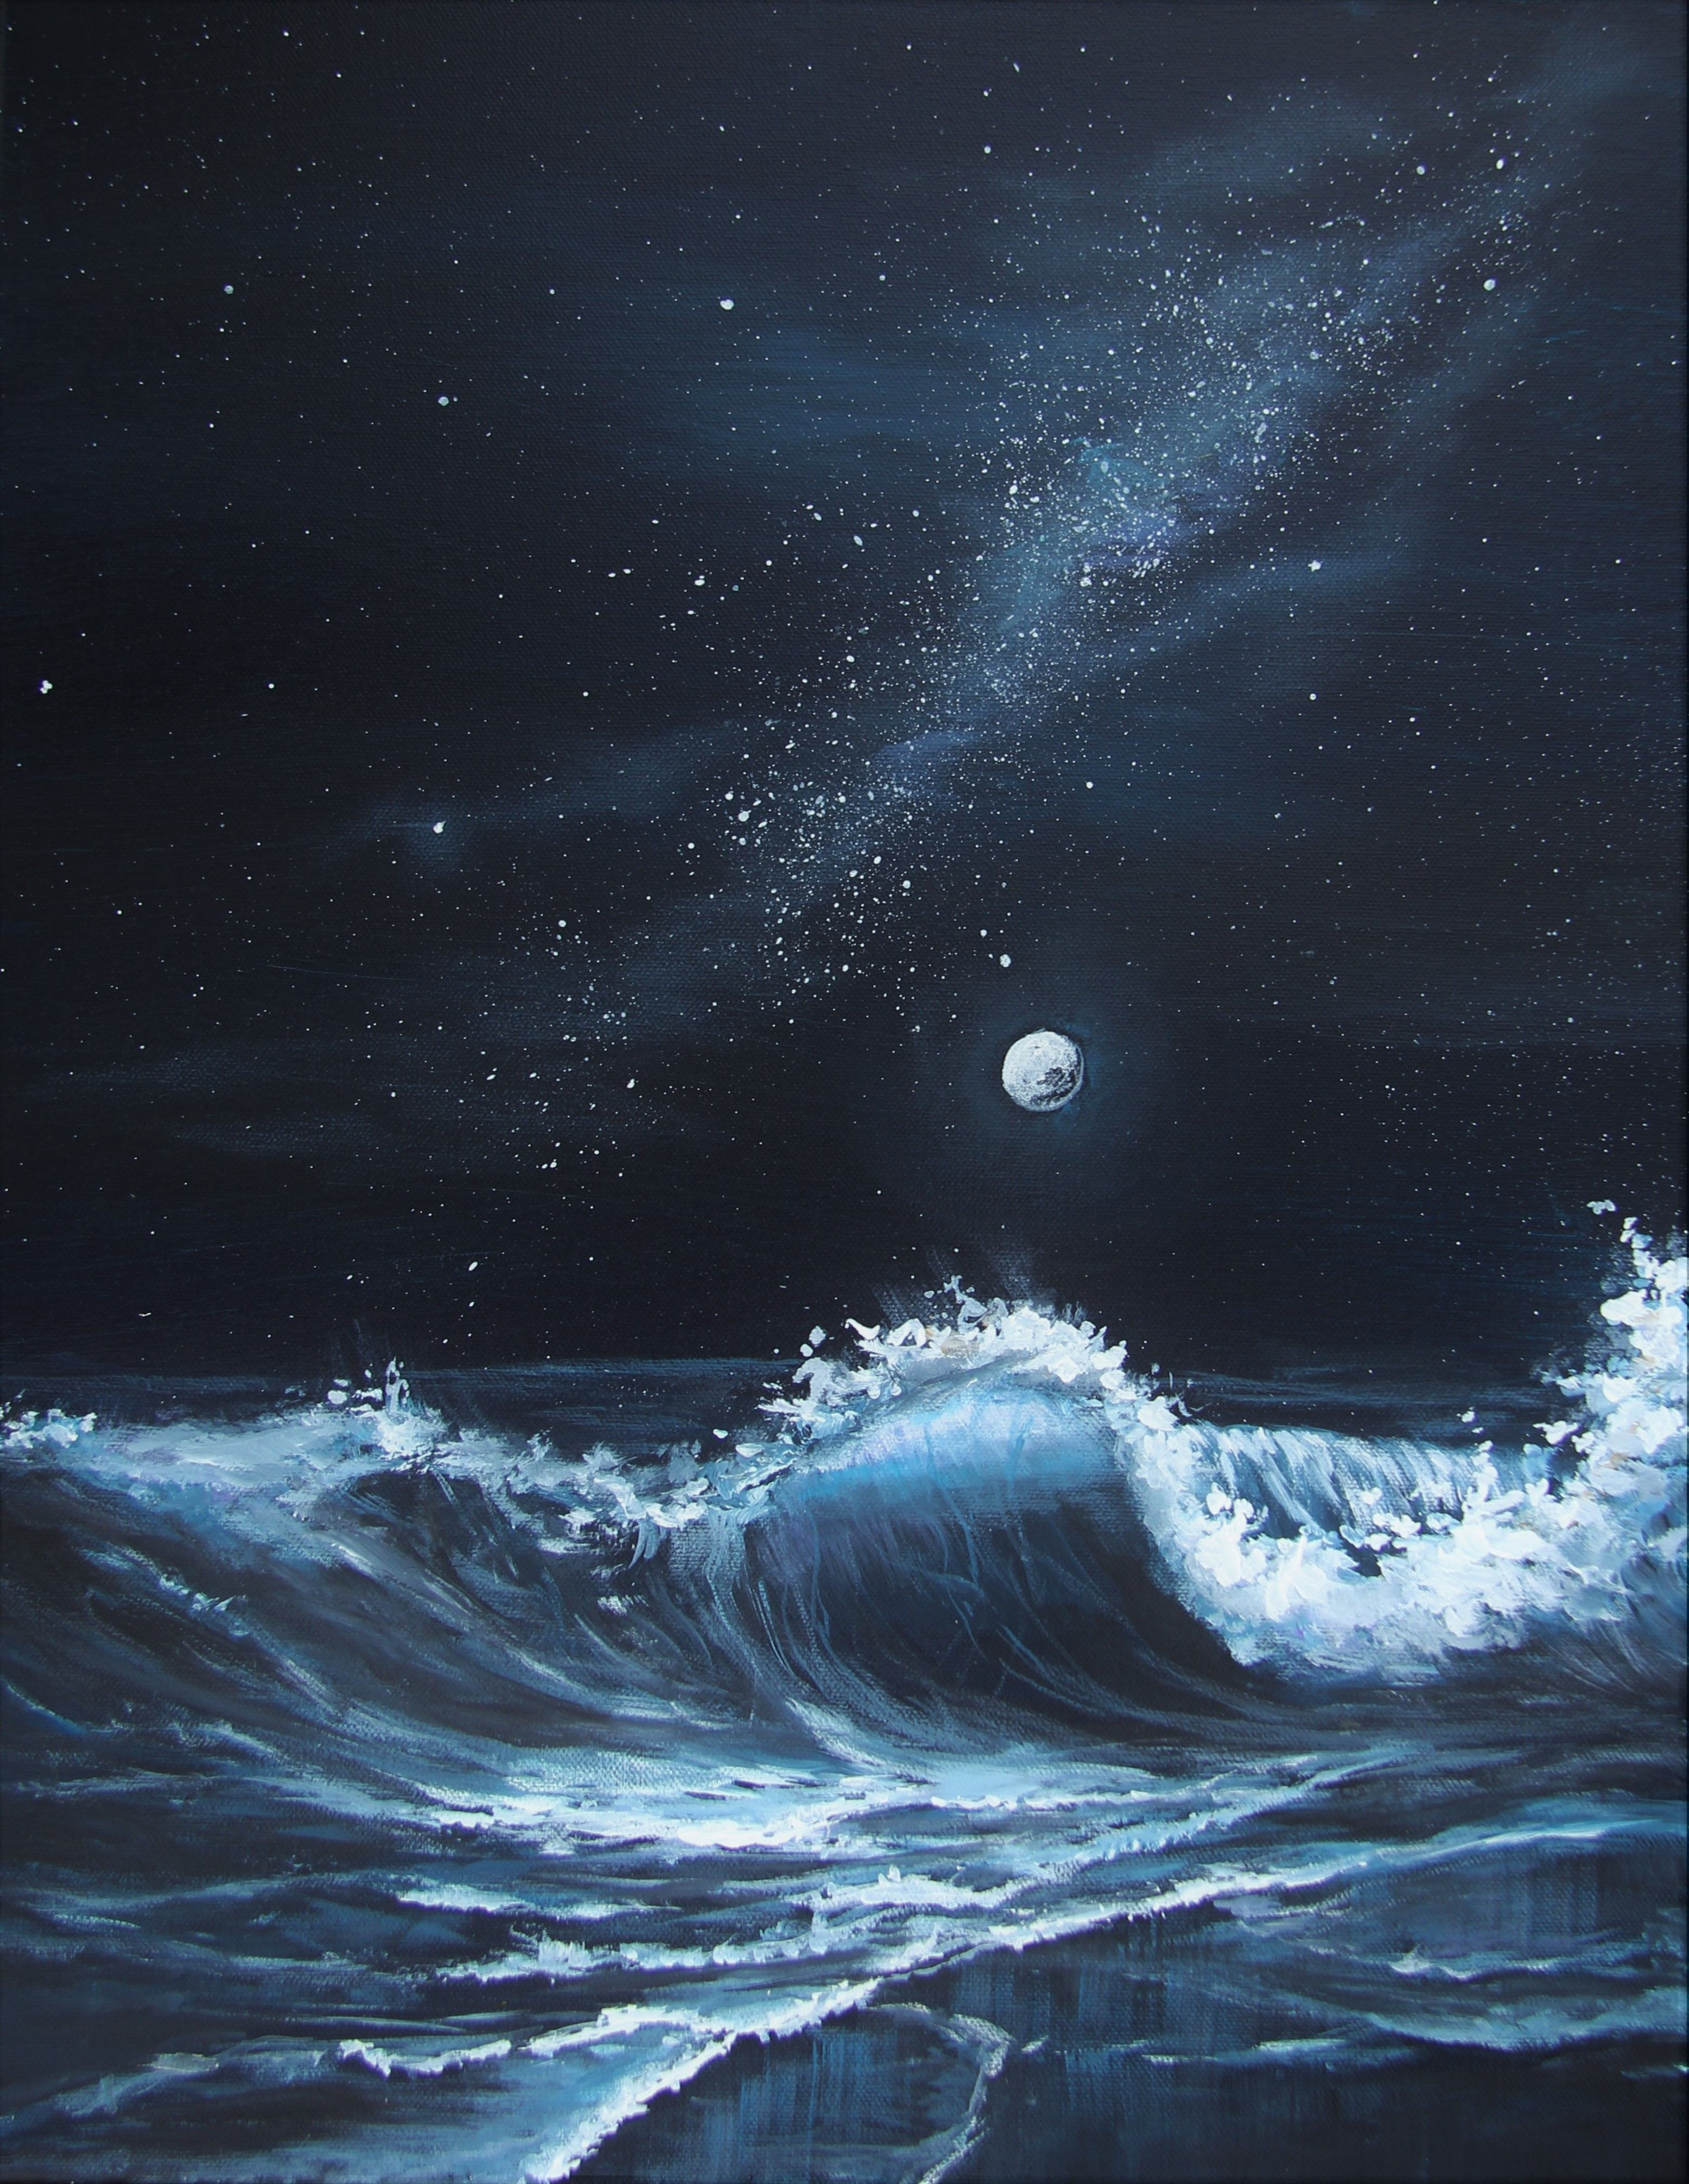 Learn how to paint the ocean, waves, and gorgeous night sky in this step by step tutorial. Bonus! Learn the differences between painting with acrylics vs. oils. Art lesson on Youtube by Ashley Krieger at Createfulart.com